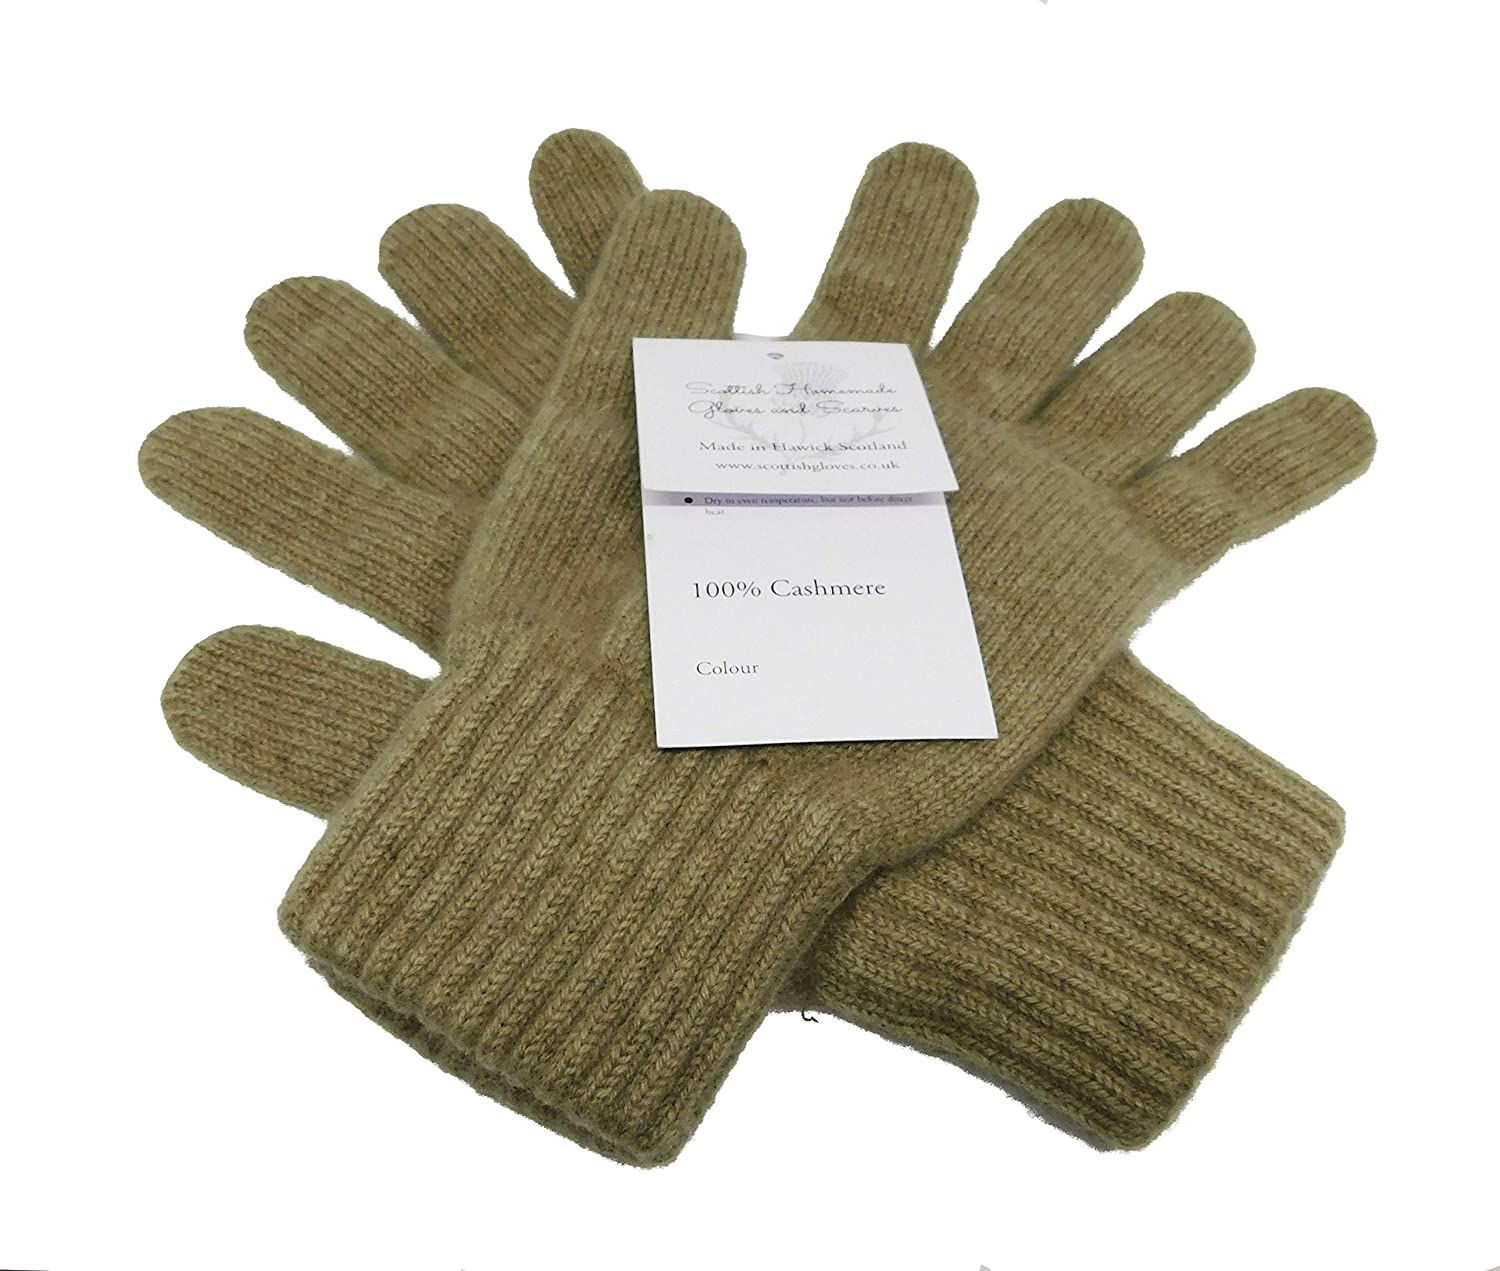 Ladies Cashmere gloves Homemade in Hawick Scottish Borders Derby Grey